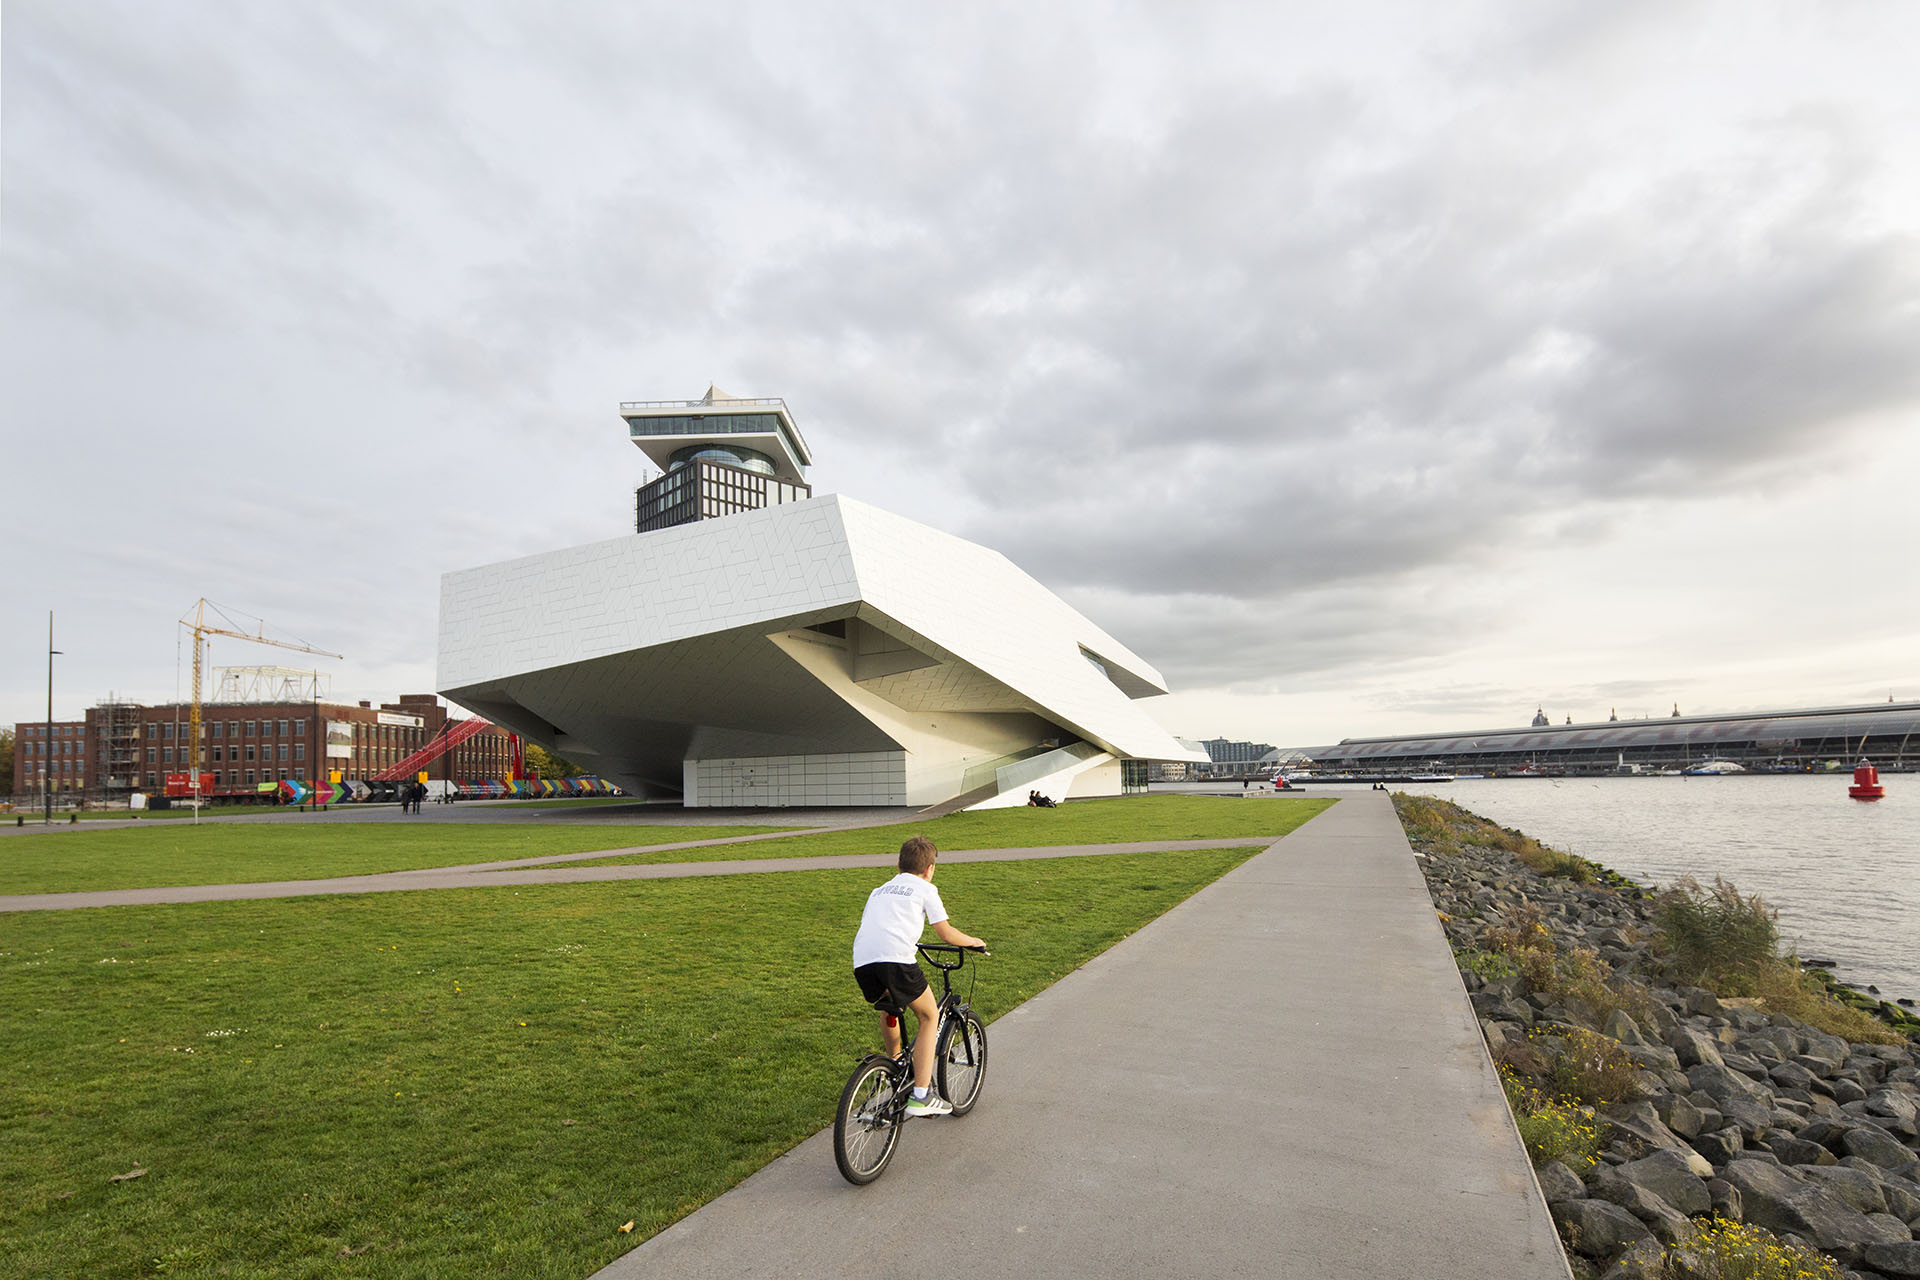 10-marc-koehler-amsterdam-simon-bosch-superlofts-architecture-architectuur-eye-filmmuseum-ij-boy-fiets-bicycle-noord